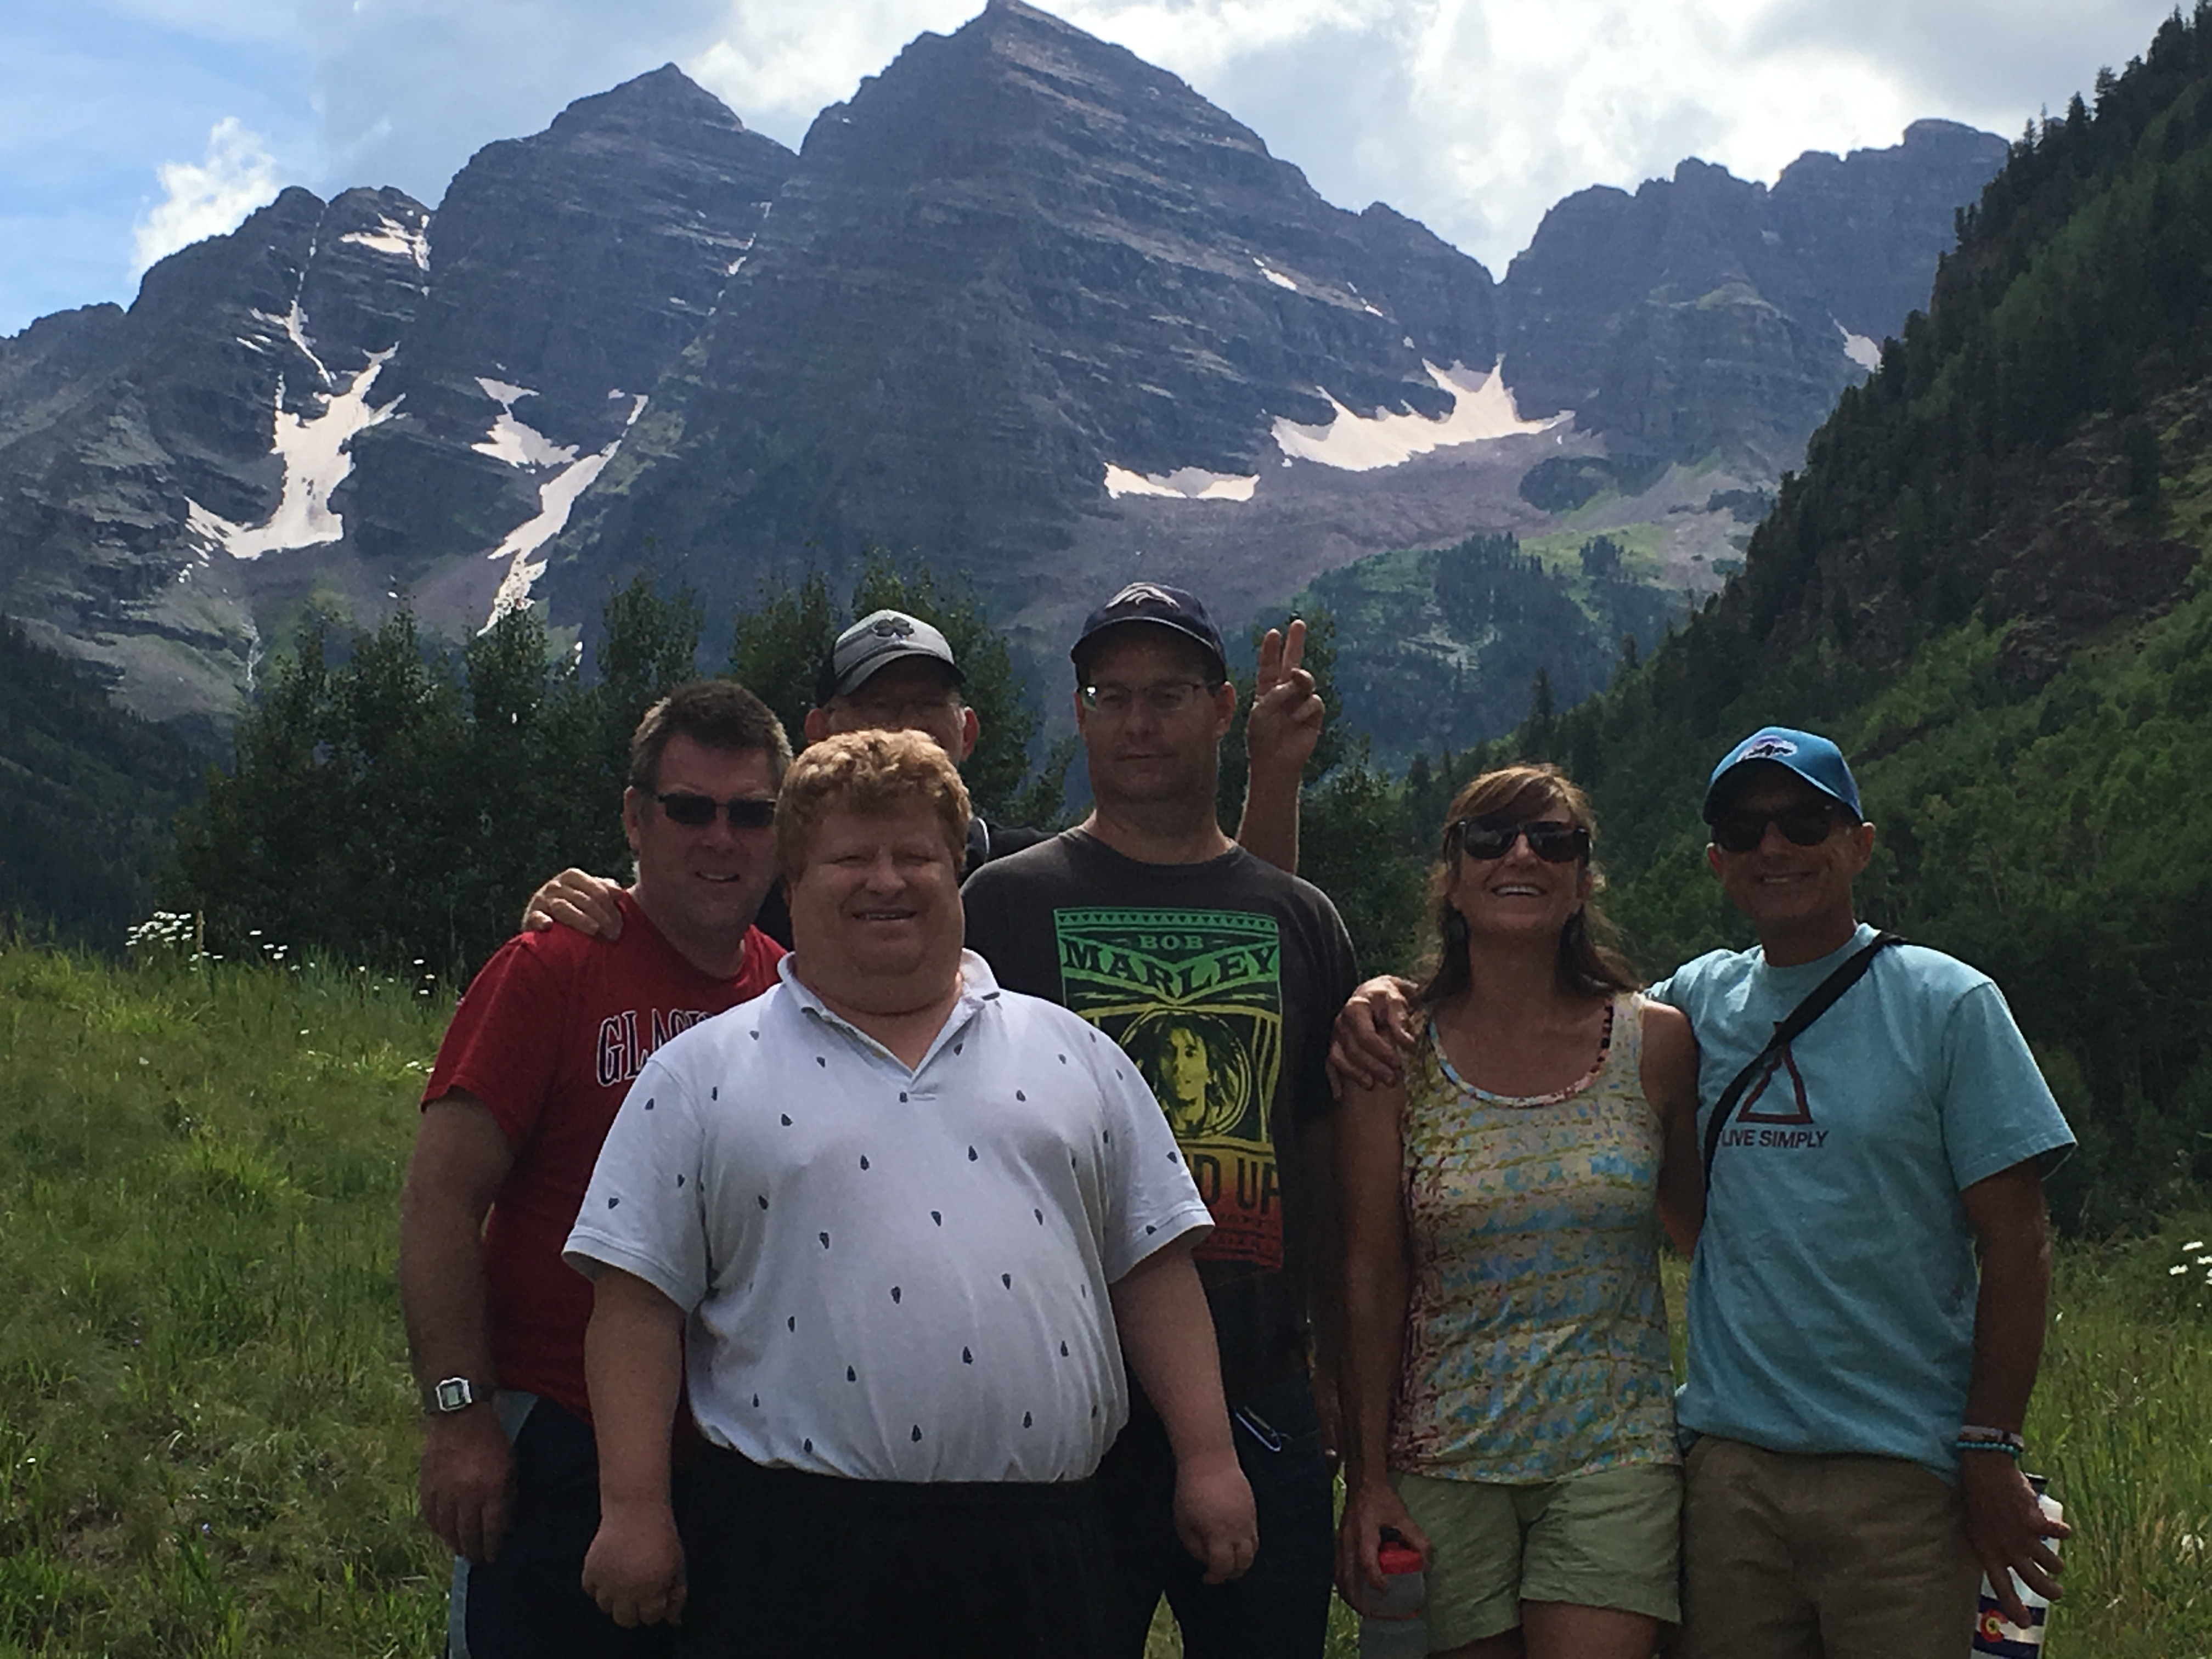 Our Group In Aspen!